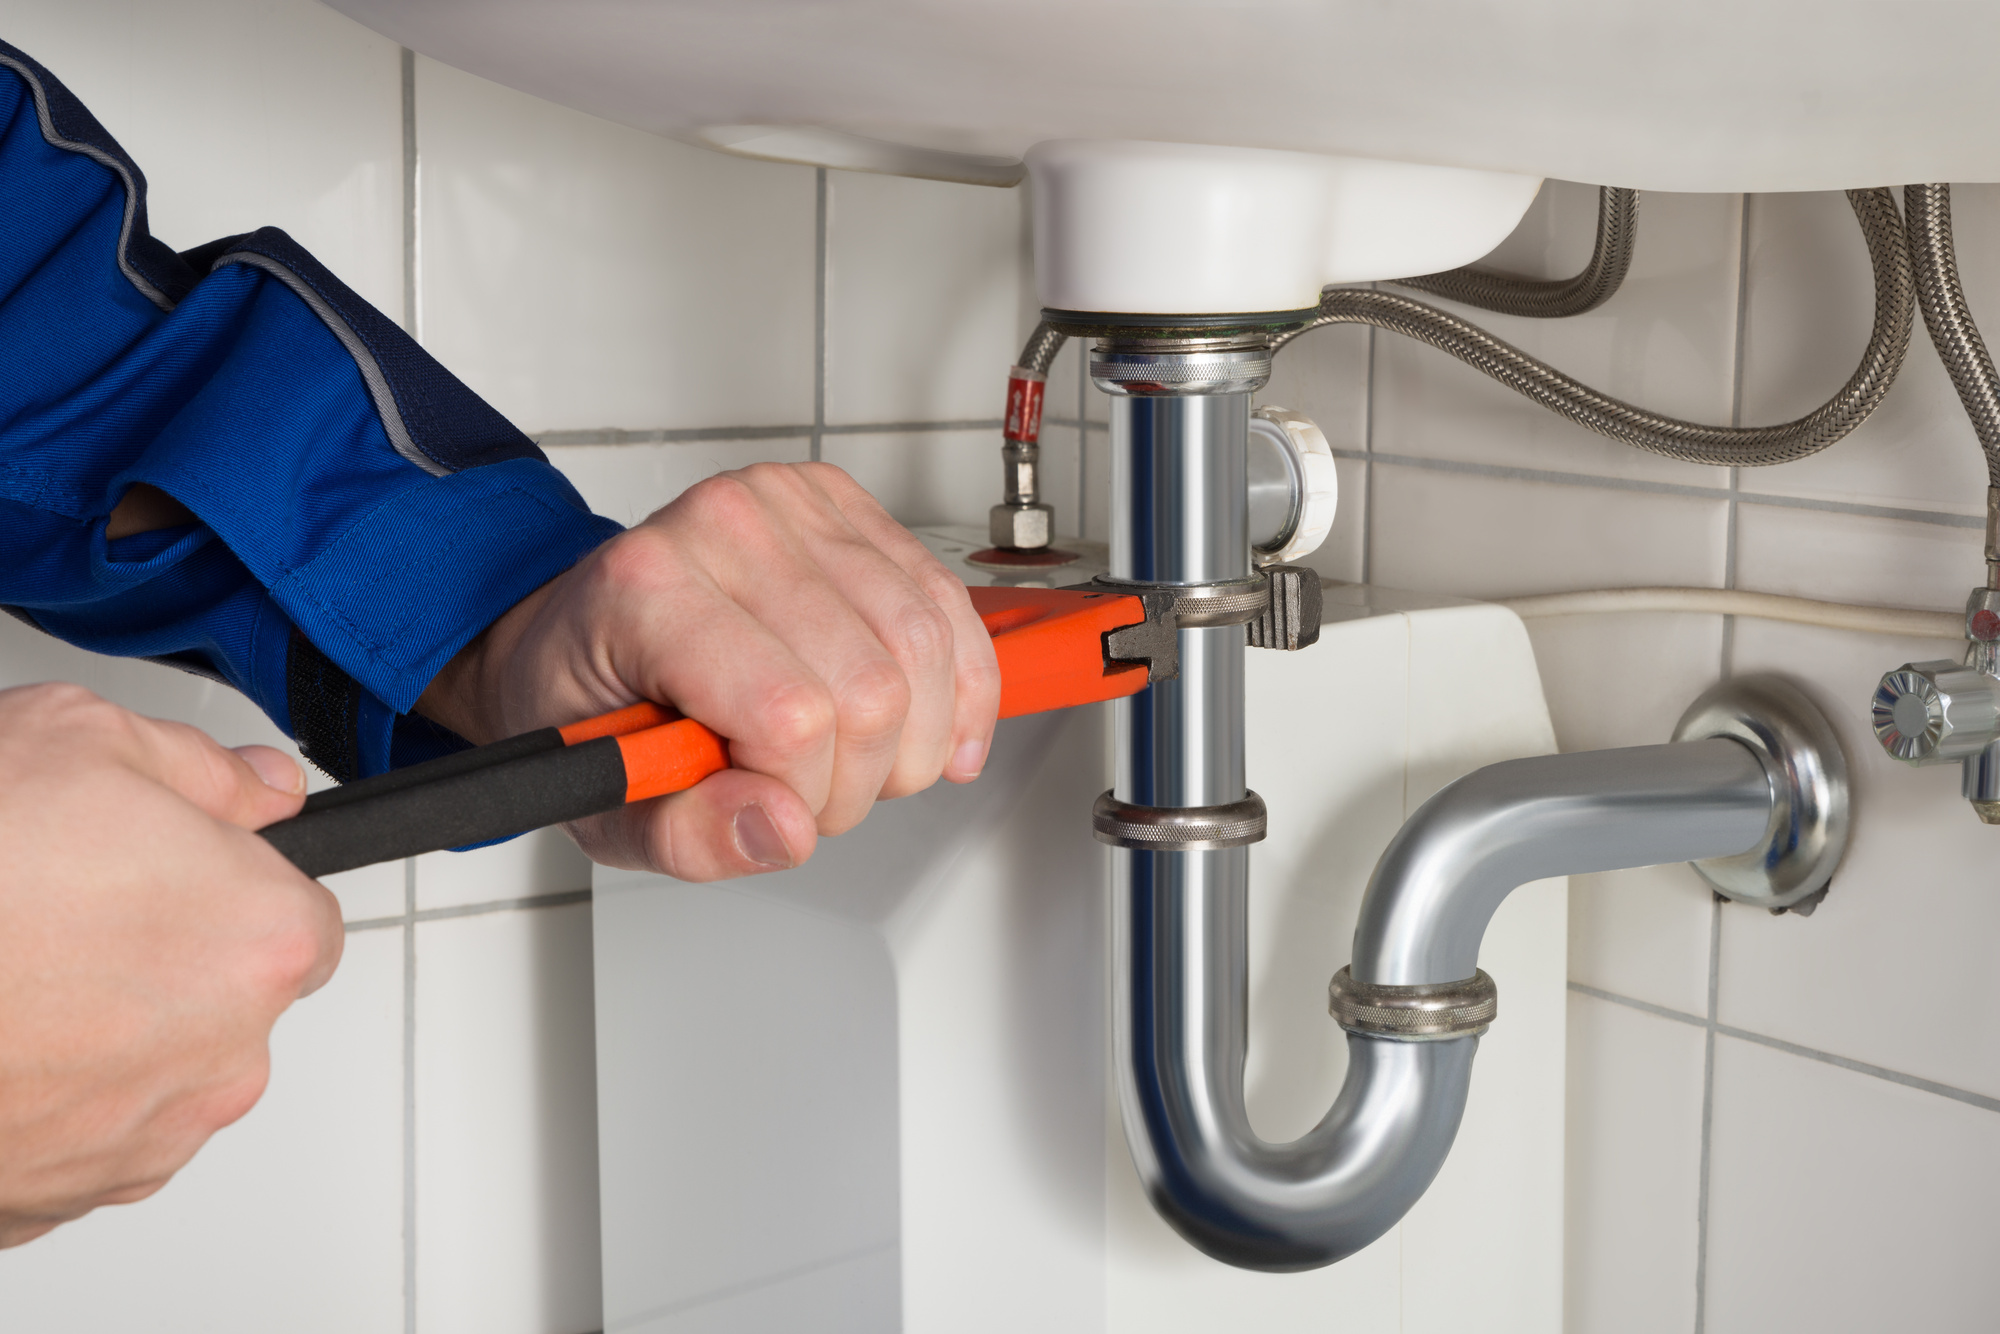 5 Plumbing Tips to Keep Your Summer Disaster-Free